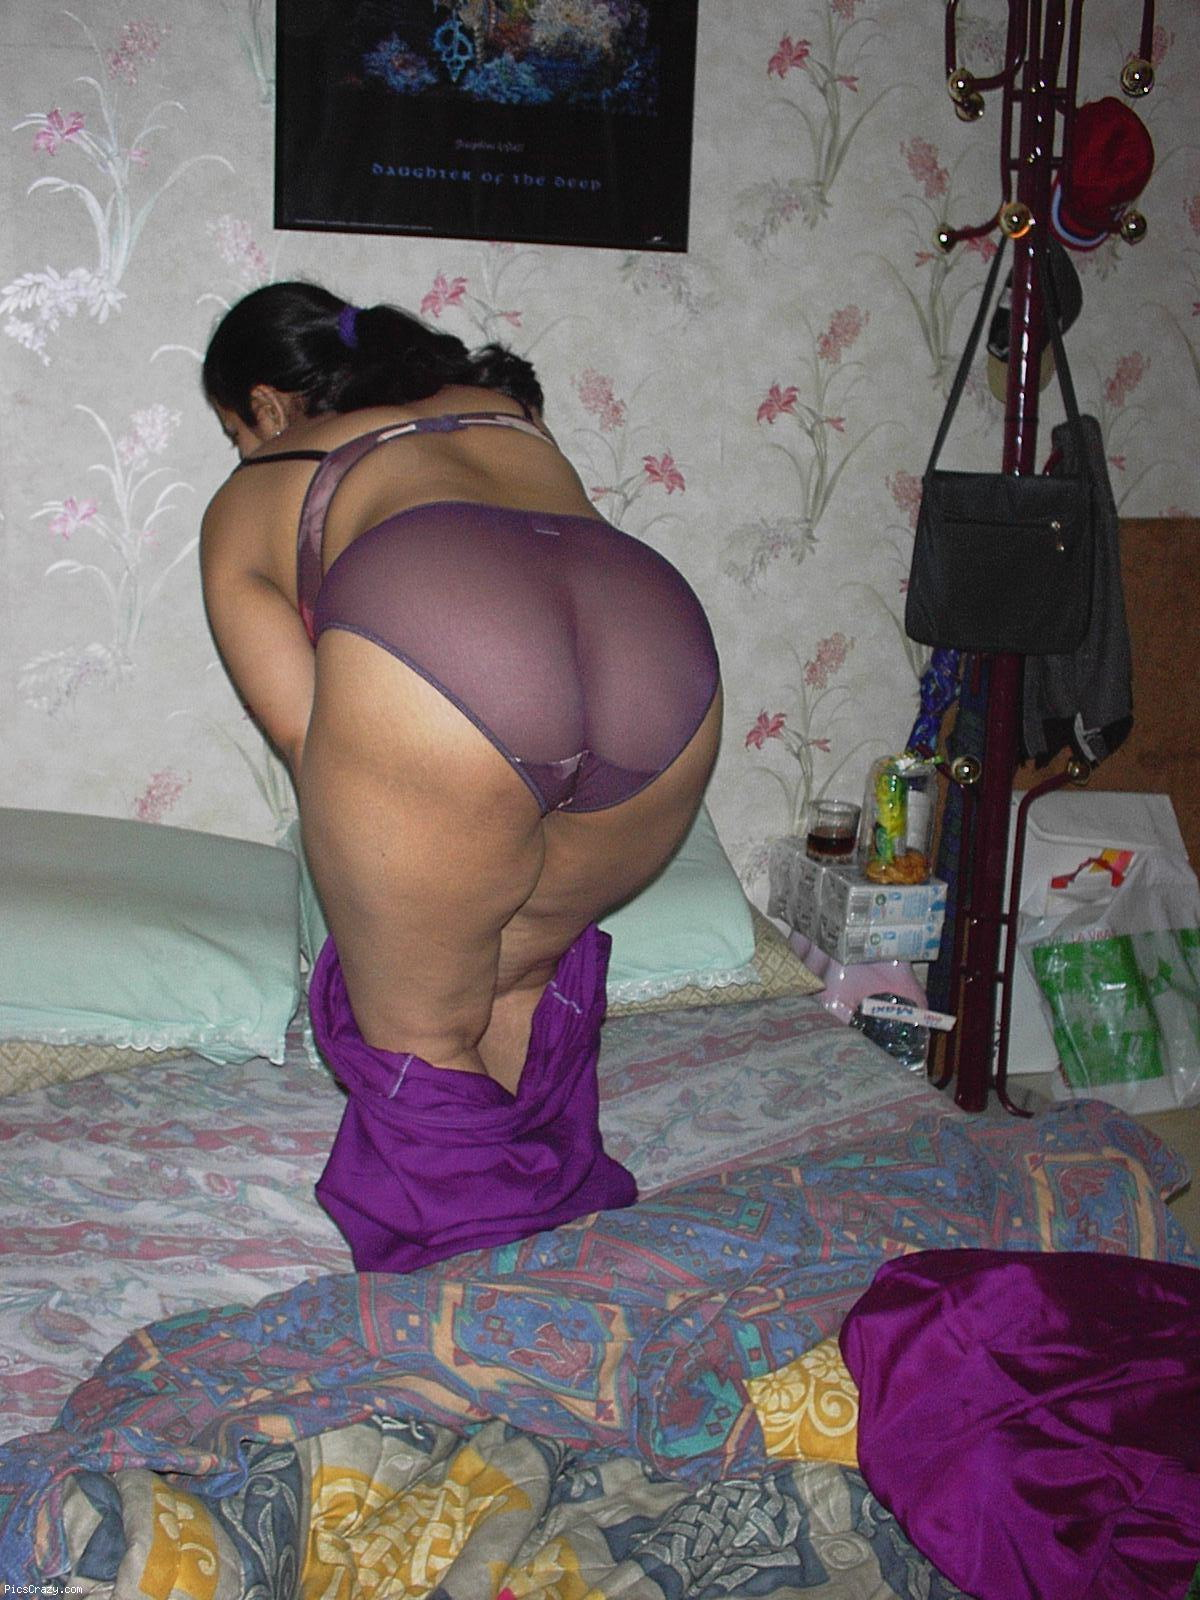 Really freaking desi aunty sexy pic babe 'Mommy